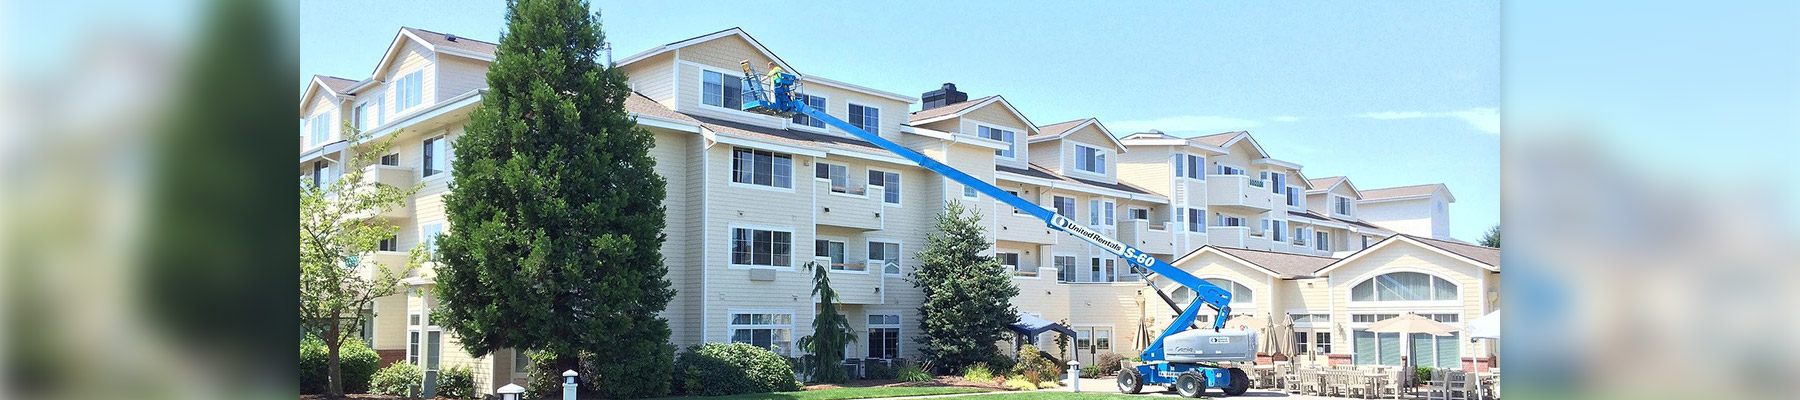 Exterior Painting of Apartment Complex